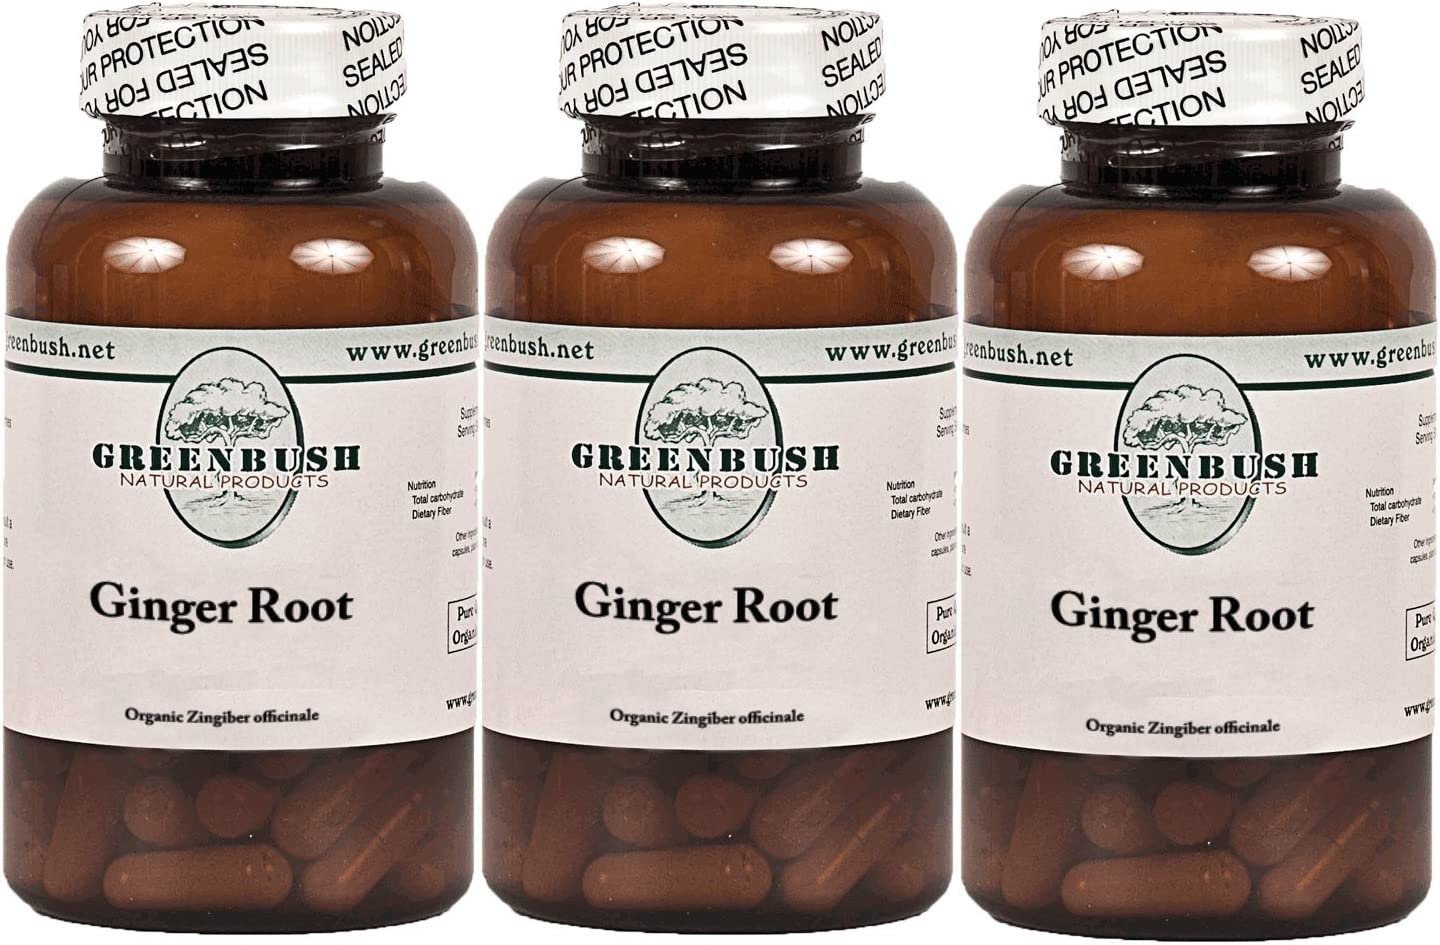 3 Bottle Pack Organic Ginger Root 100 Vegetarian Capsules 575mg. Pure No Fillers. Gingerol Super Antioxidant Anti-inflammatory. Many Health Benefits. Top Quality and Potency. Free Shipping